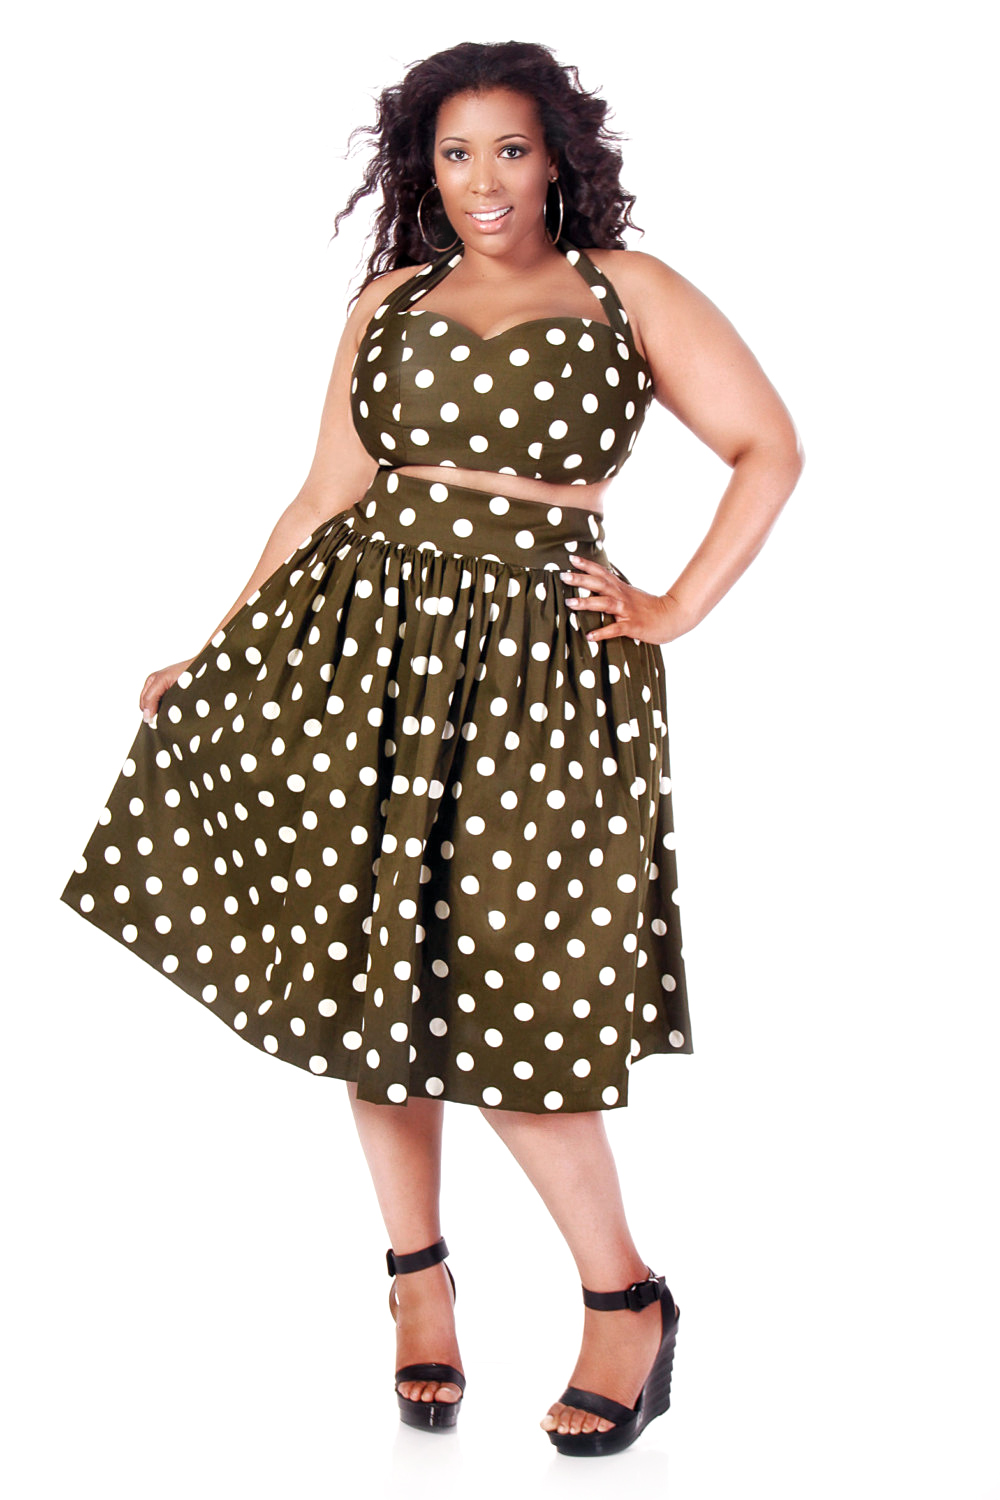 JIBRI High Waist Polka Dot Flare Skirt — JIBRI